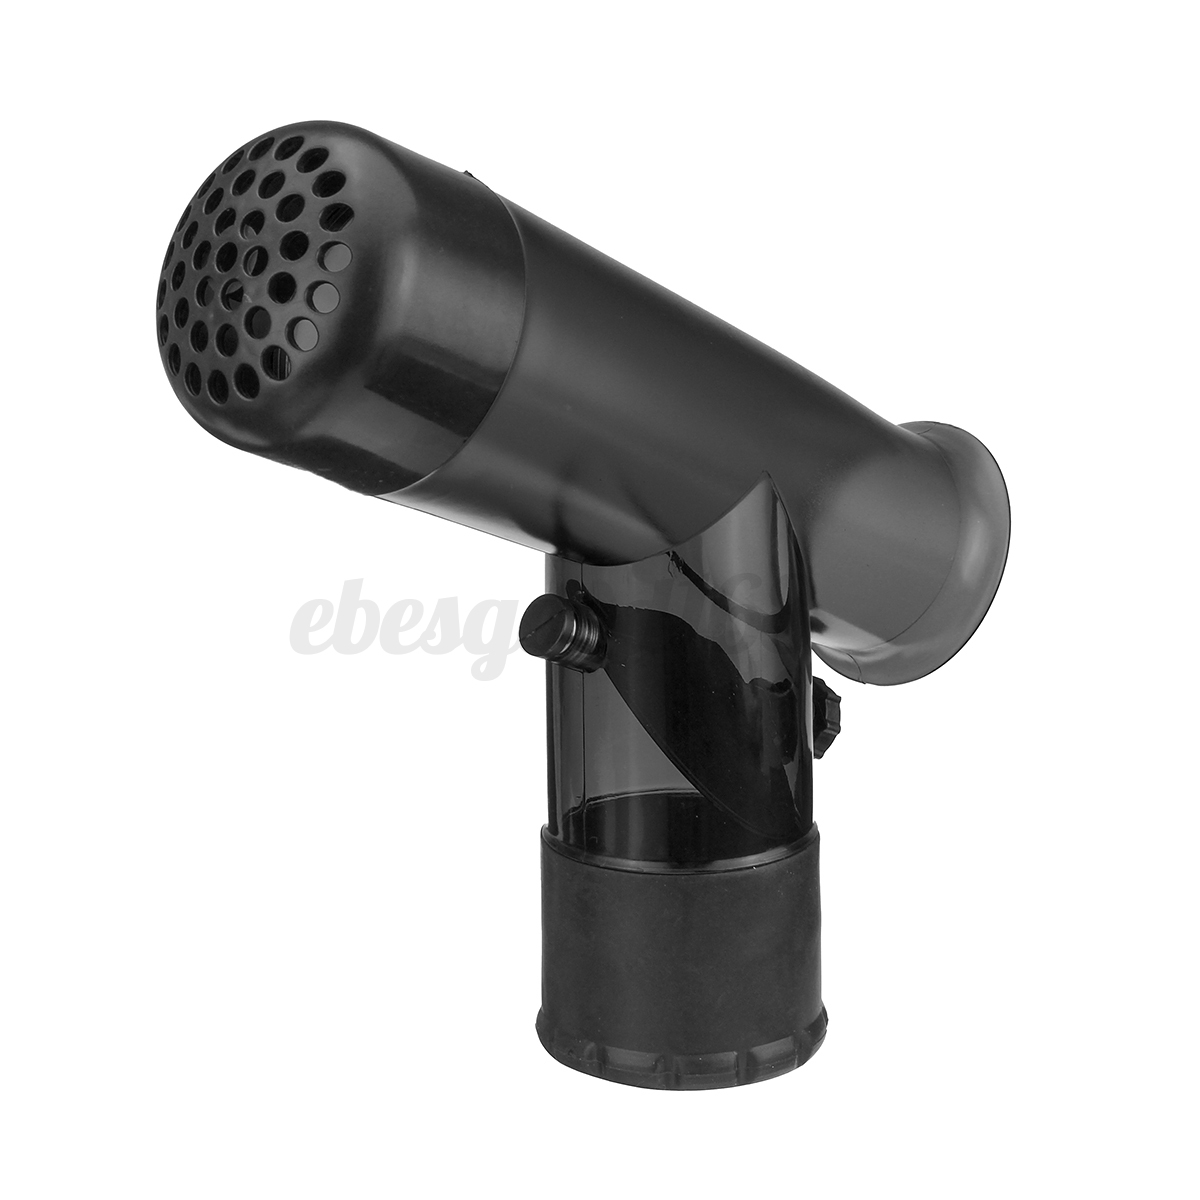 Pro Hair Dryer Diffuser Wind Spin Detachable Curl Hair Diffusers Roller Curler 4